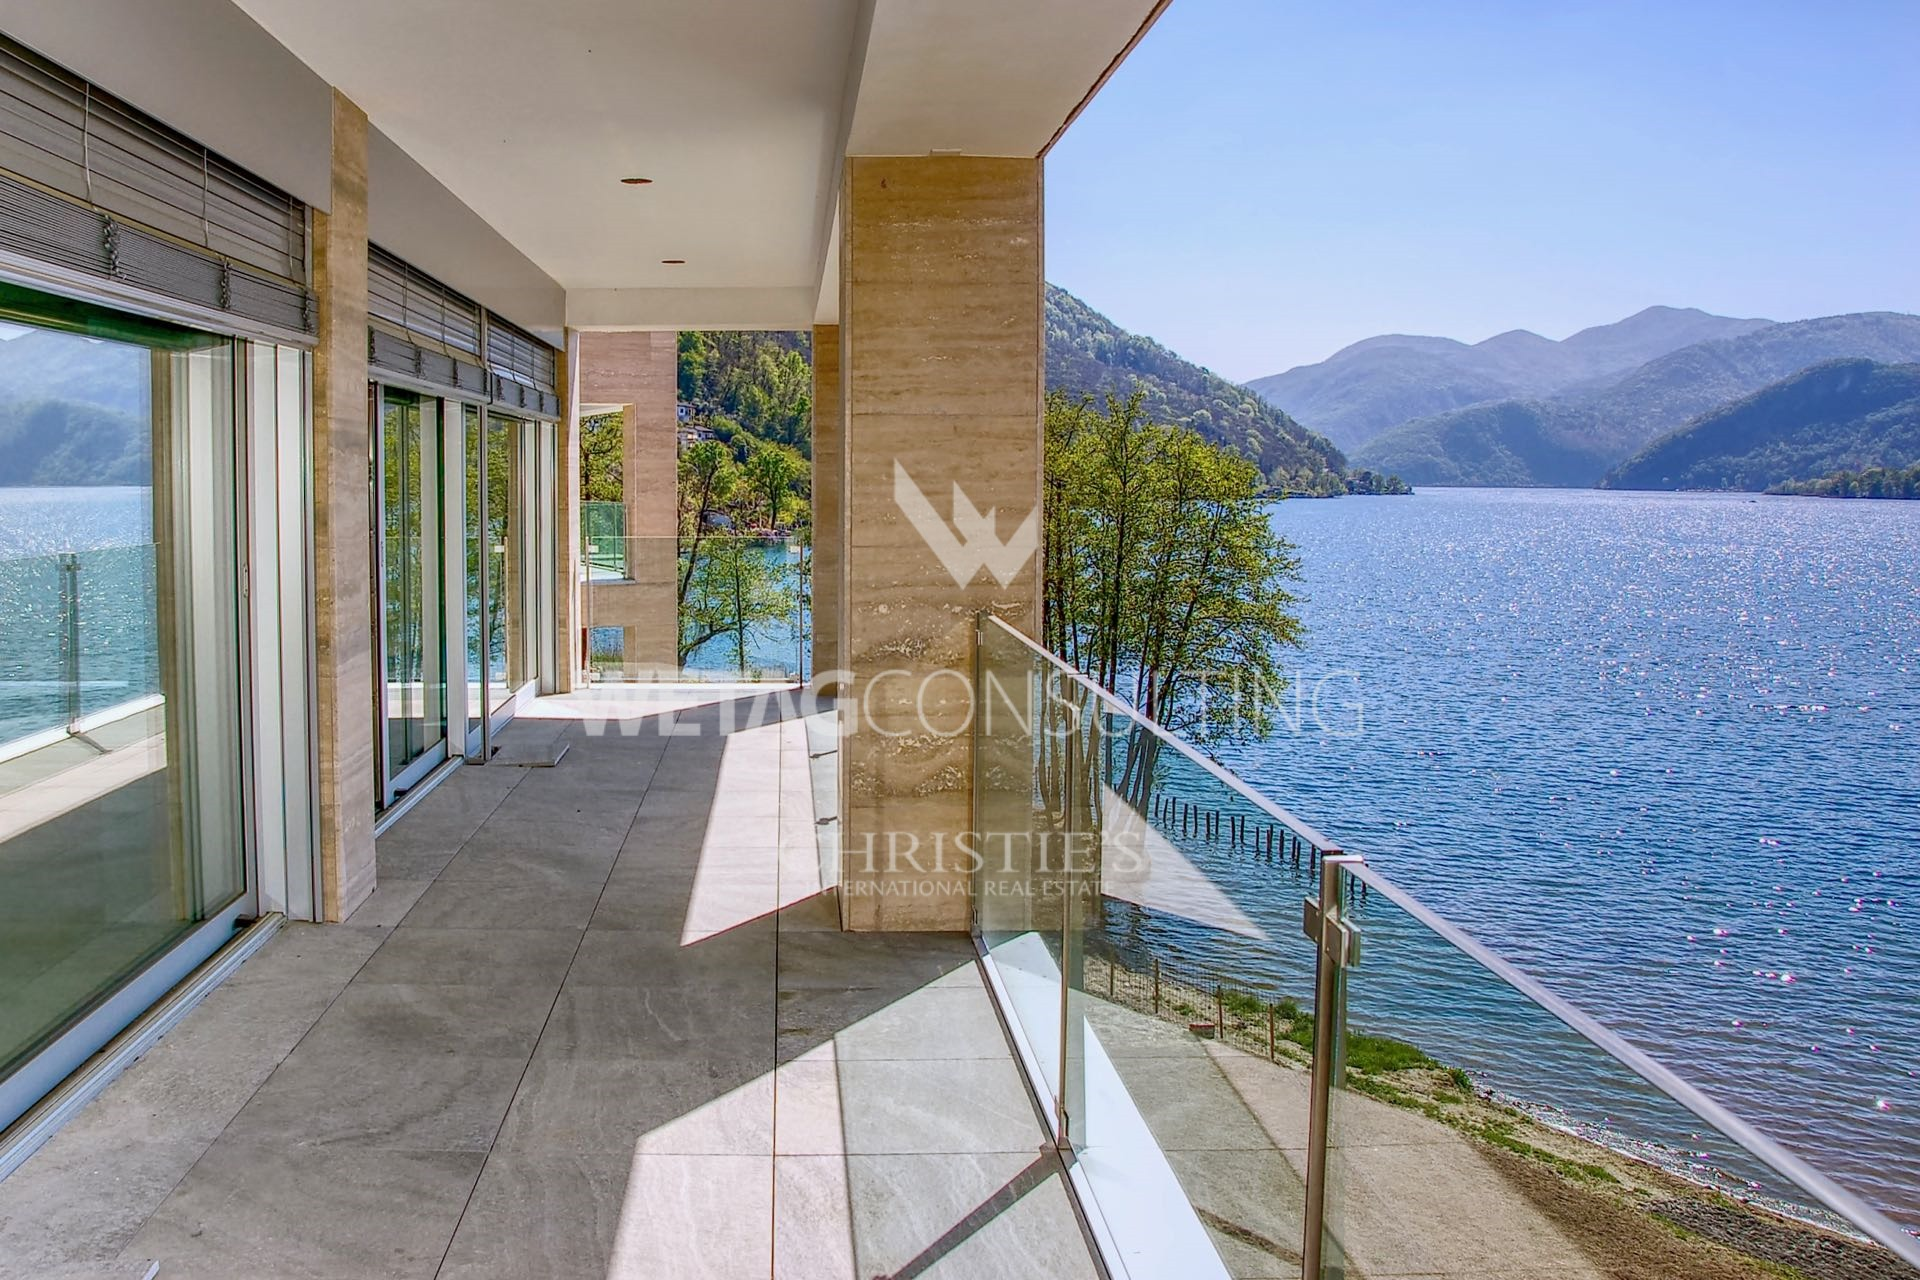 Apratment with 4.5 rooms & terrace - 3 bedrooms, 192 m² living area,14 m² terraceRef. 88259-3CHF 2'080'000